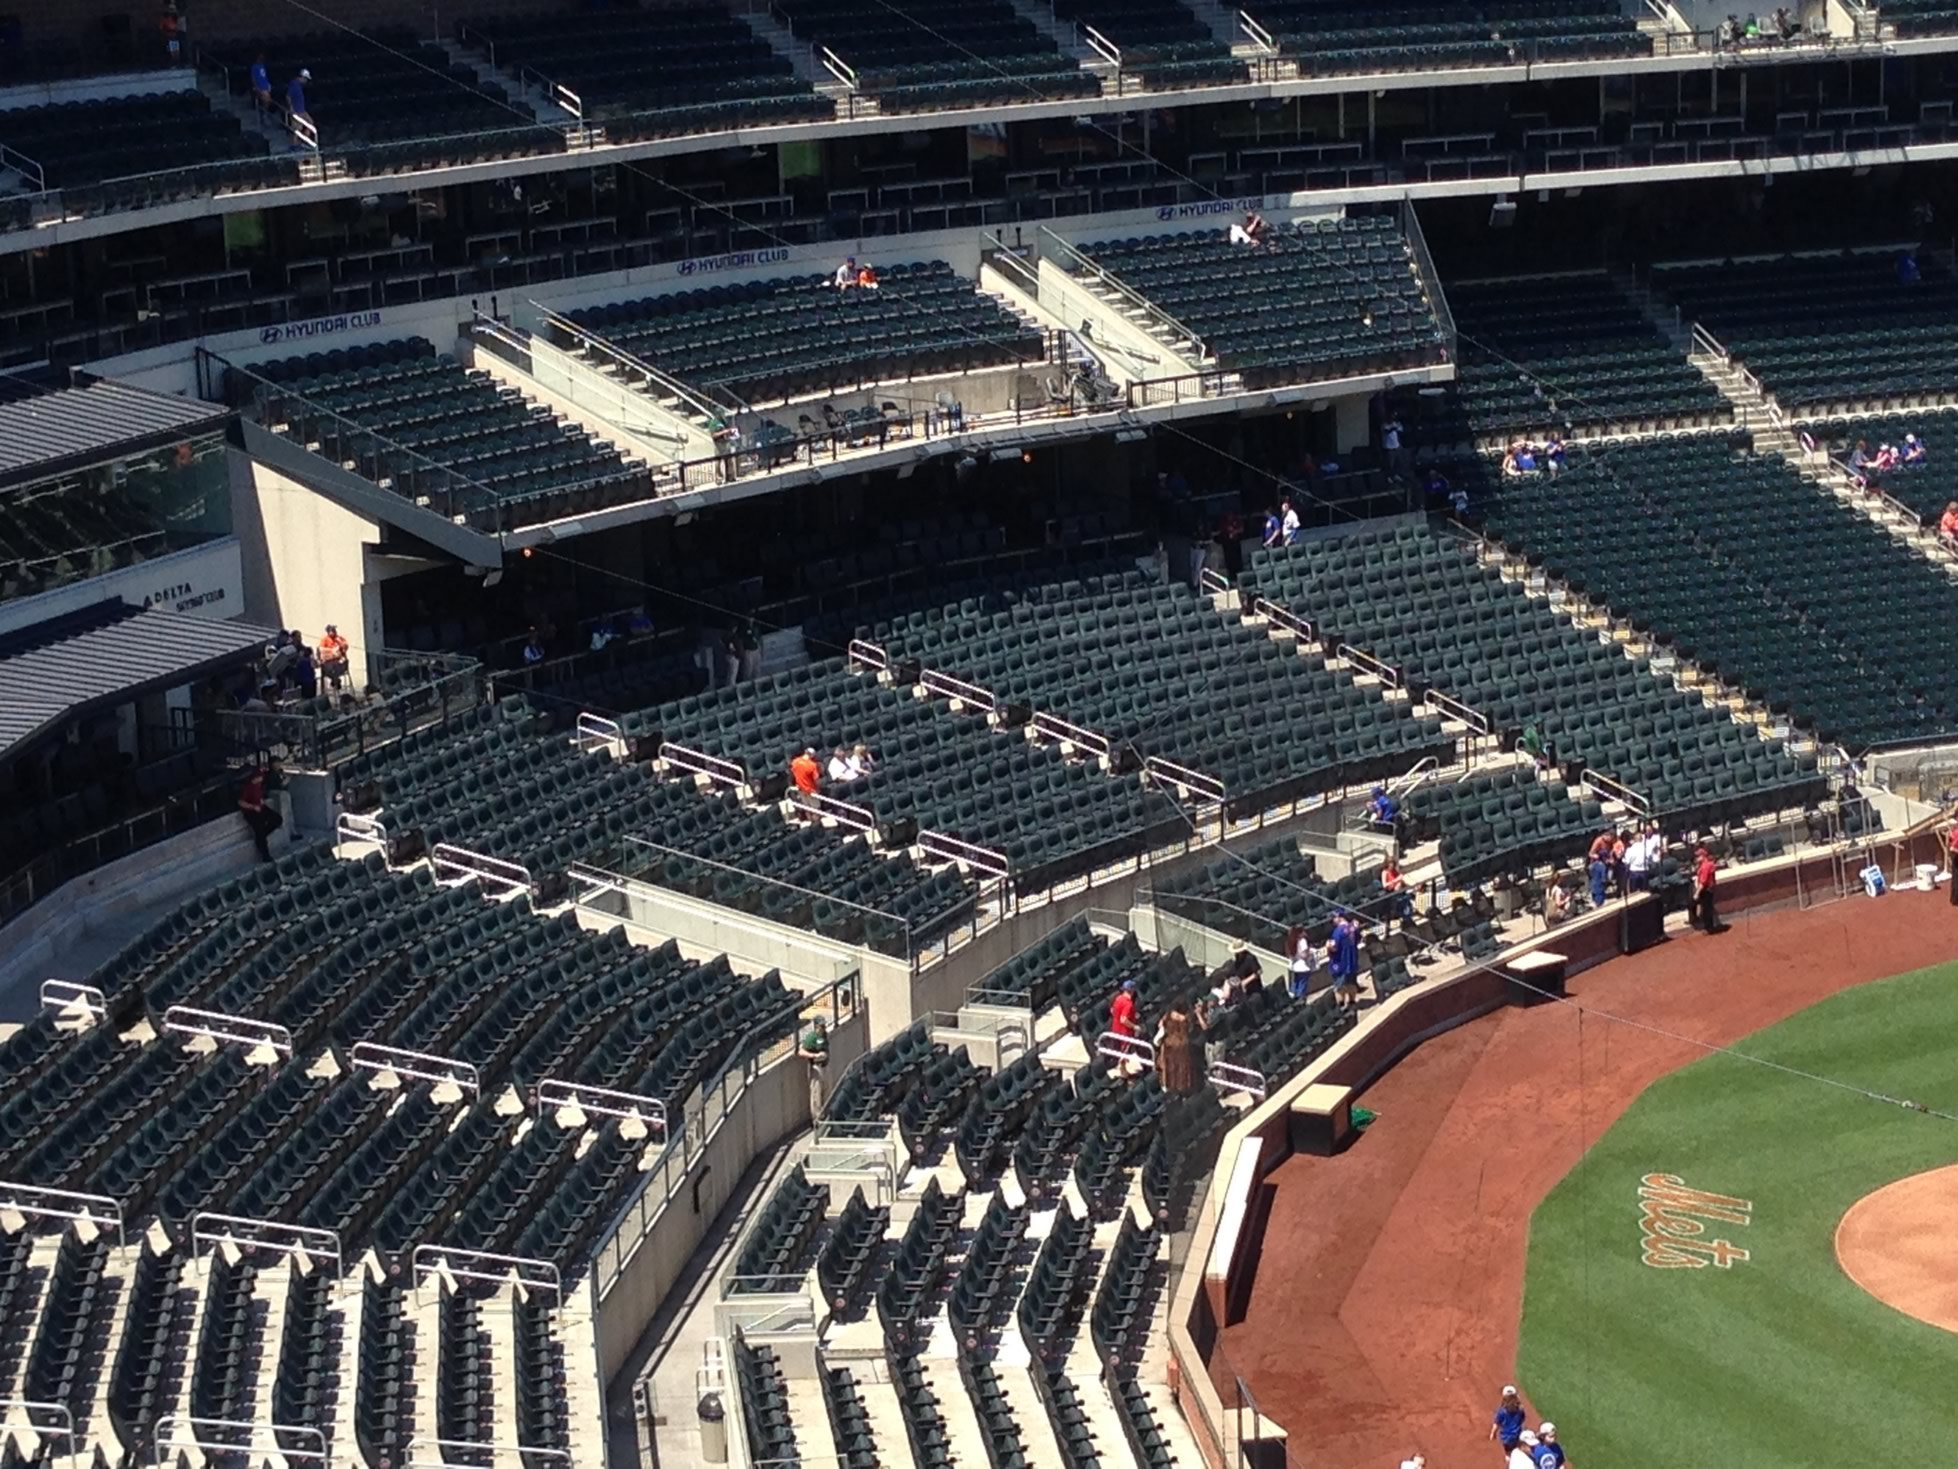 New York Mets Seating Guide - Citi Field - RateYourSeats.com